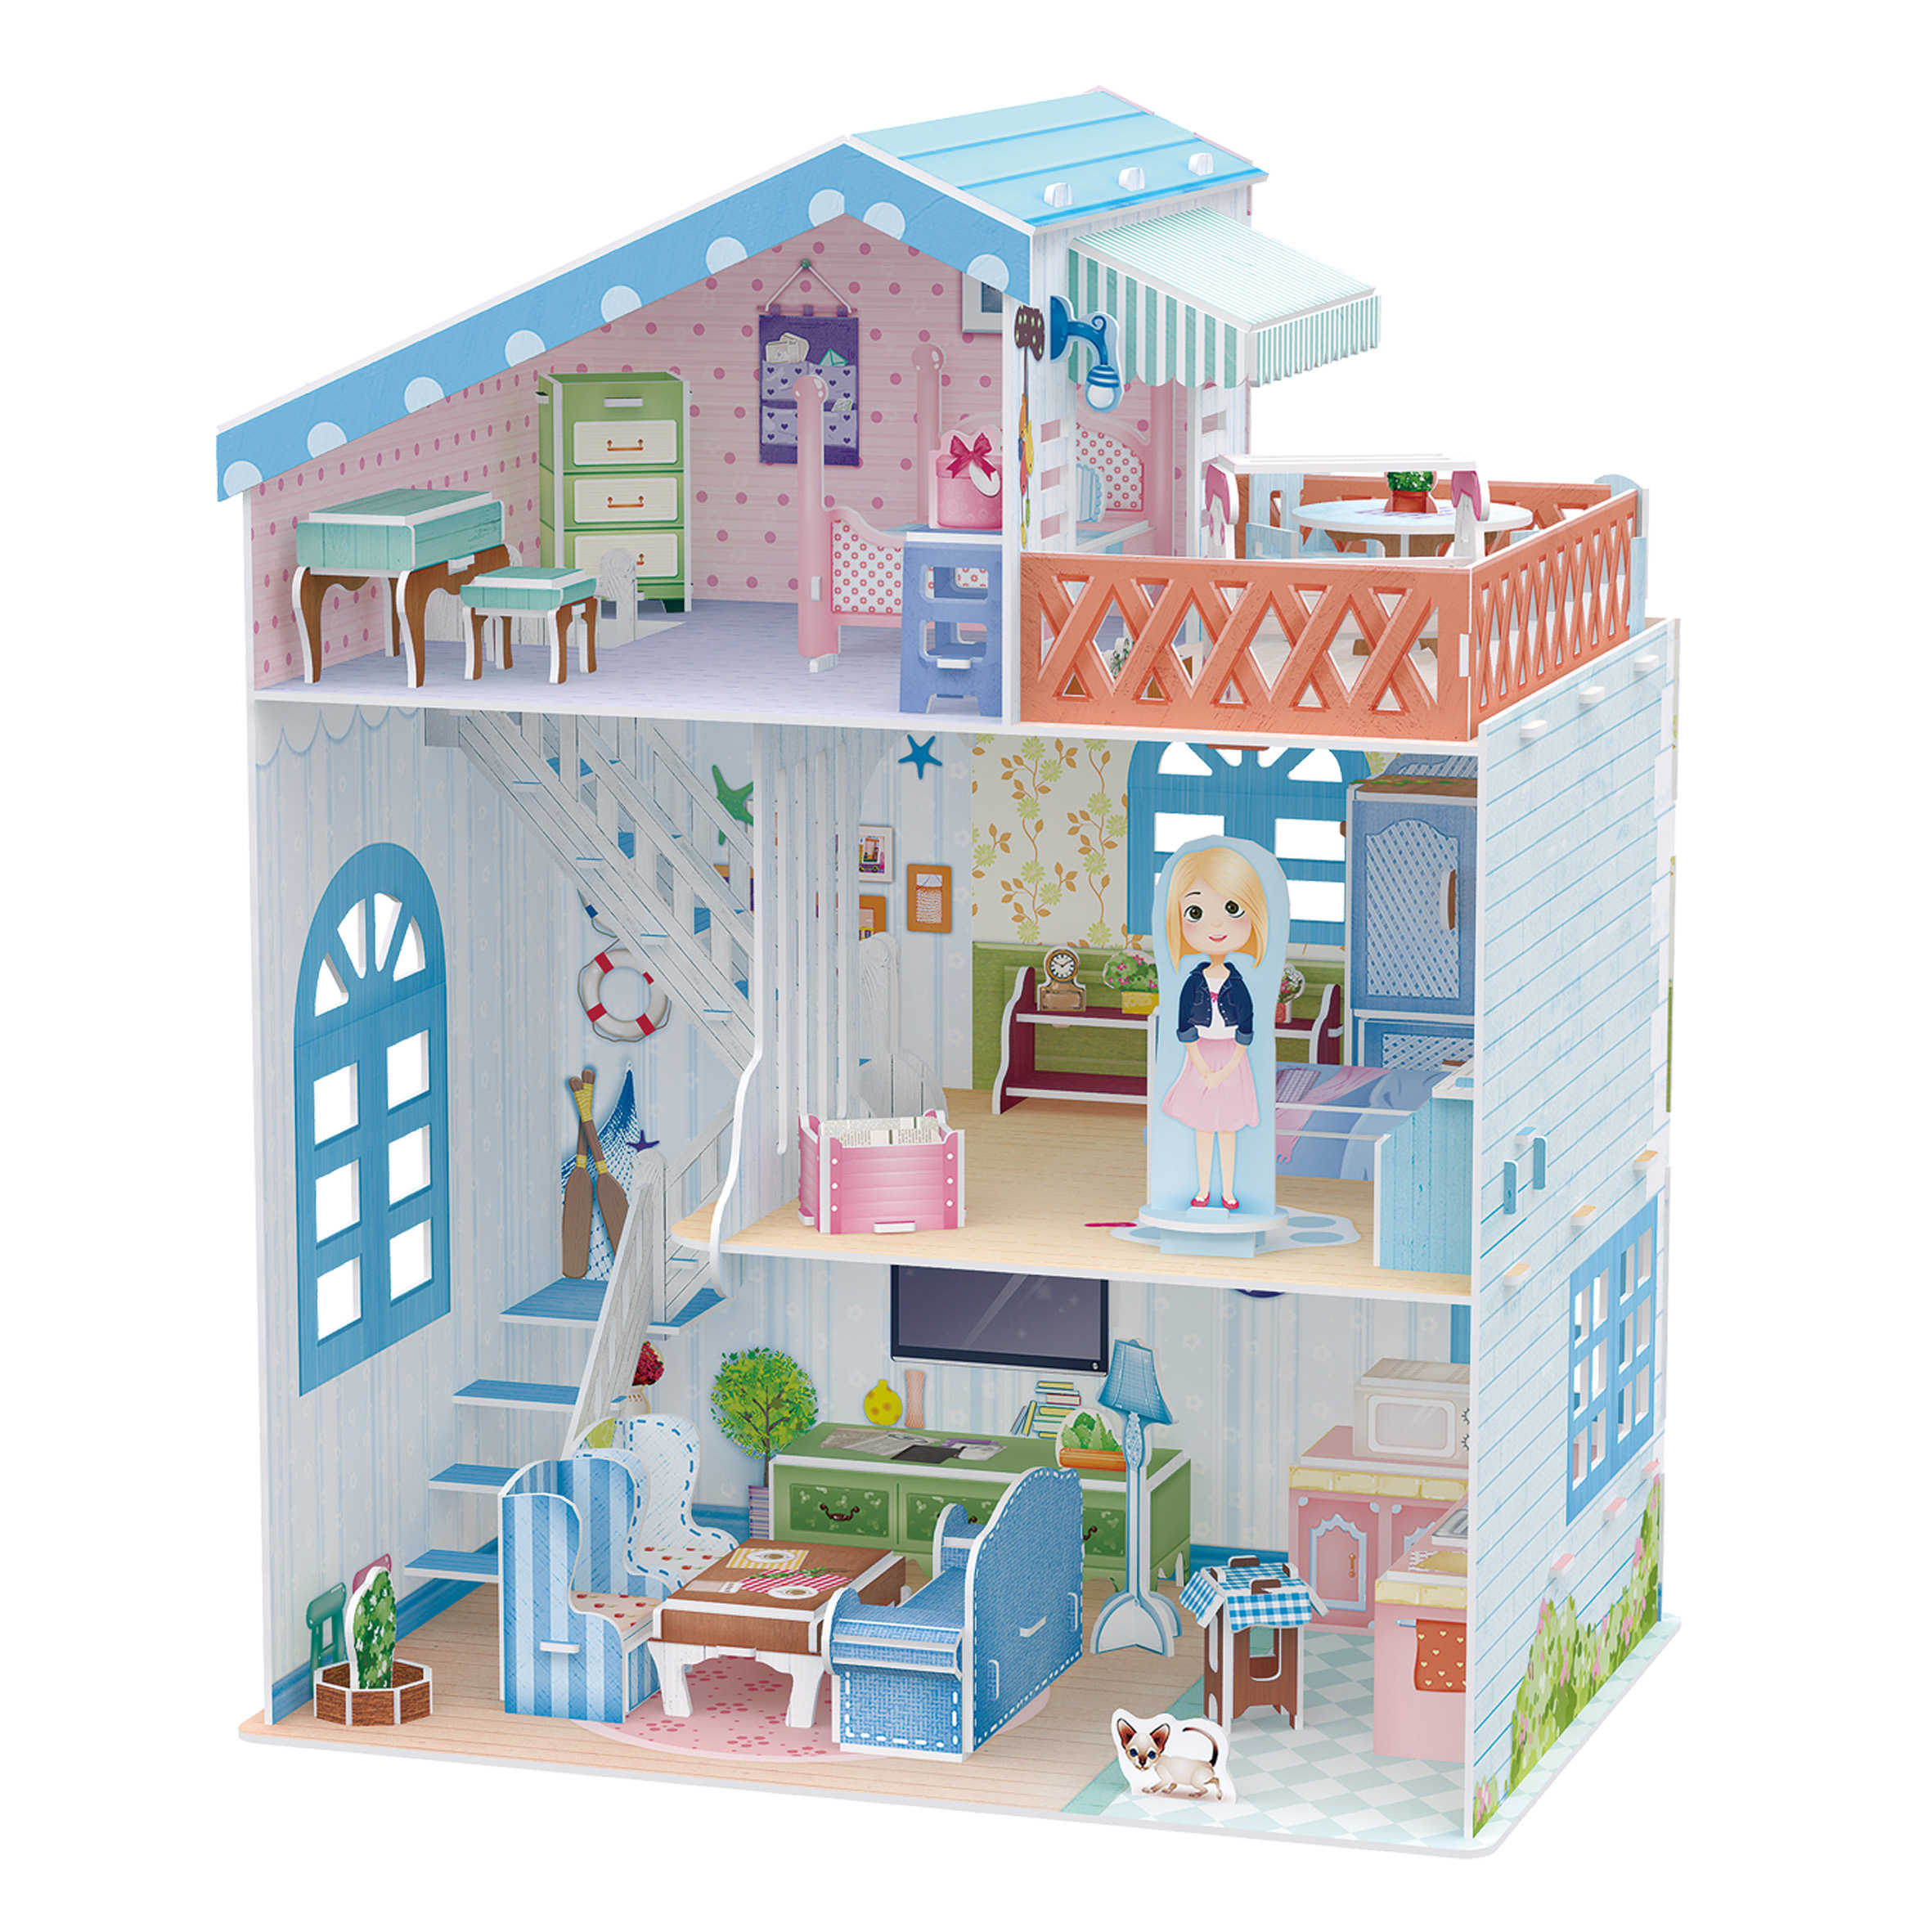 3D Jigsaw Puzzle - Seaside Village (Difficulty: 4/6) Cubic ...